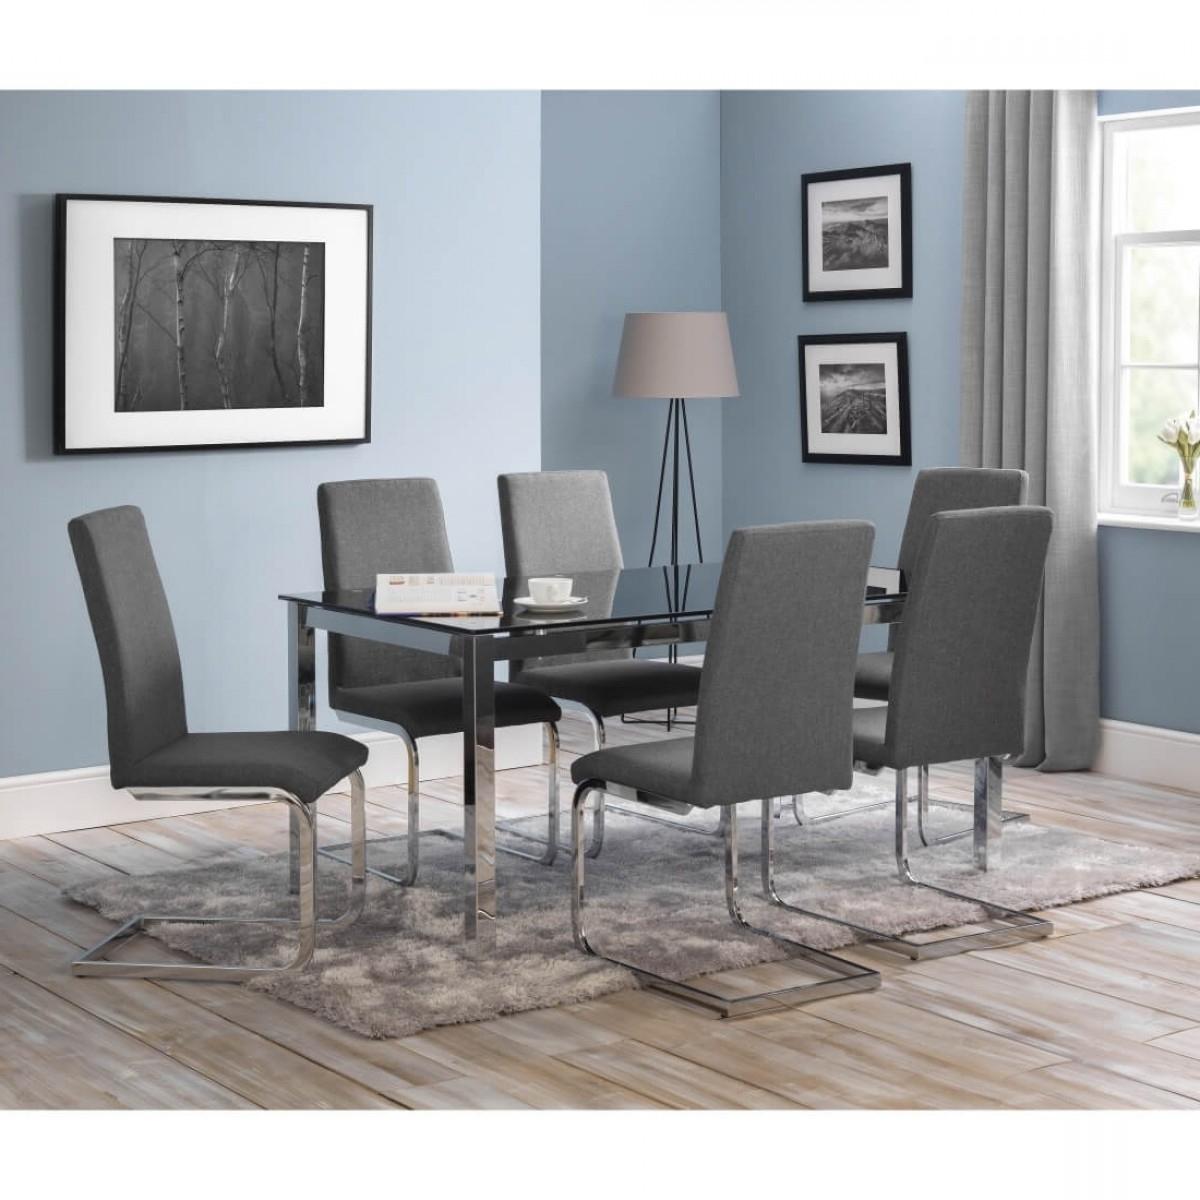 Roma Dining Tables With Regard To Best And Newest Dining Set – Tempo Dining Table And 4 Roma Chairs Tem (View 3 of 25)